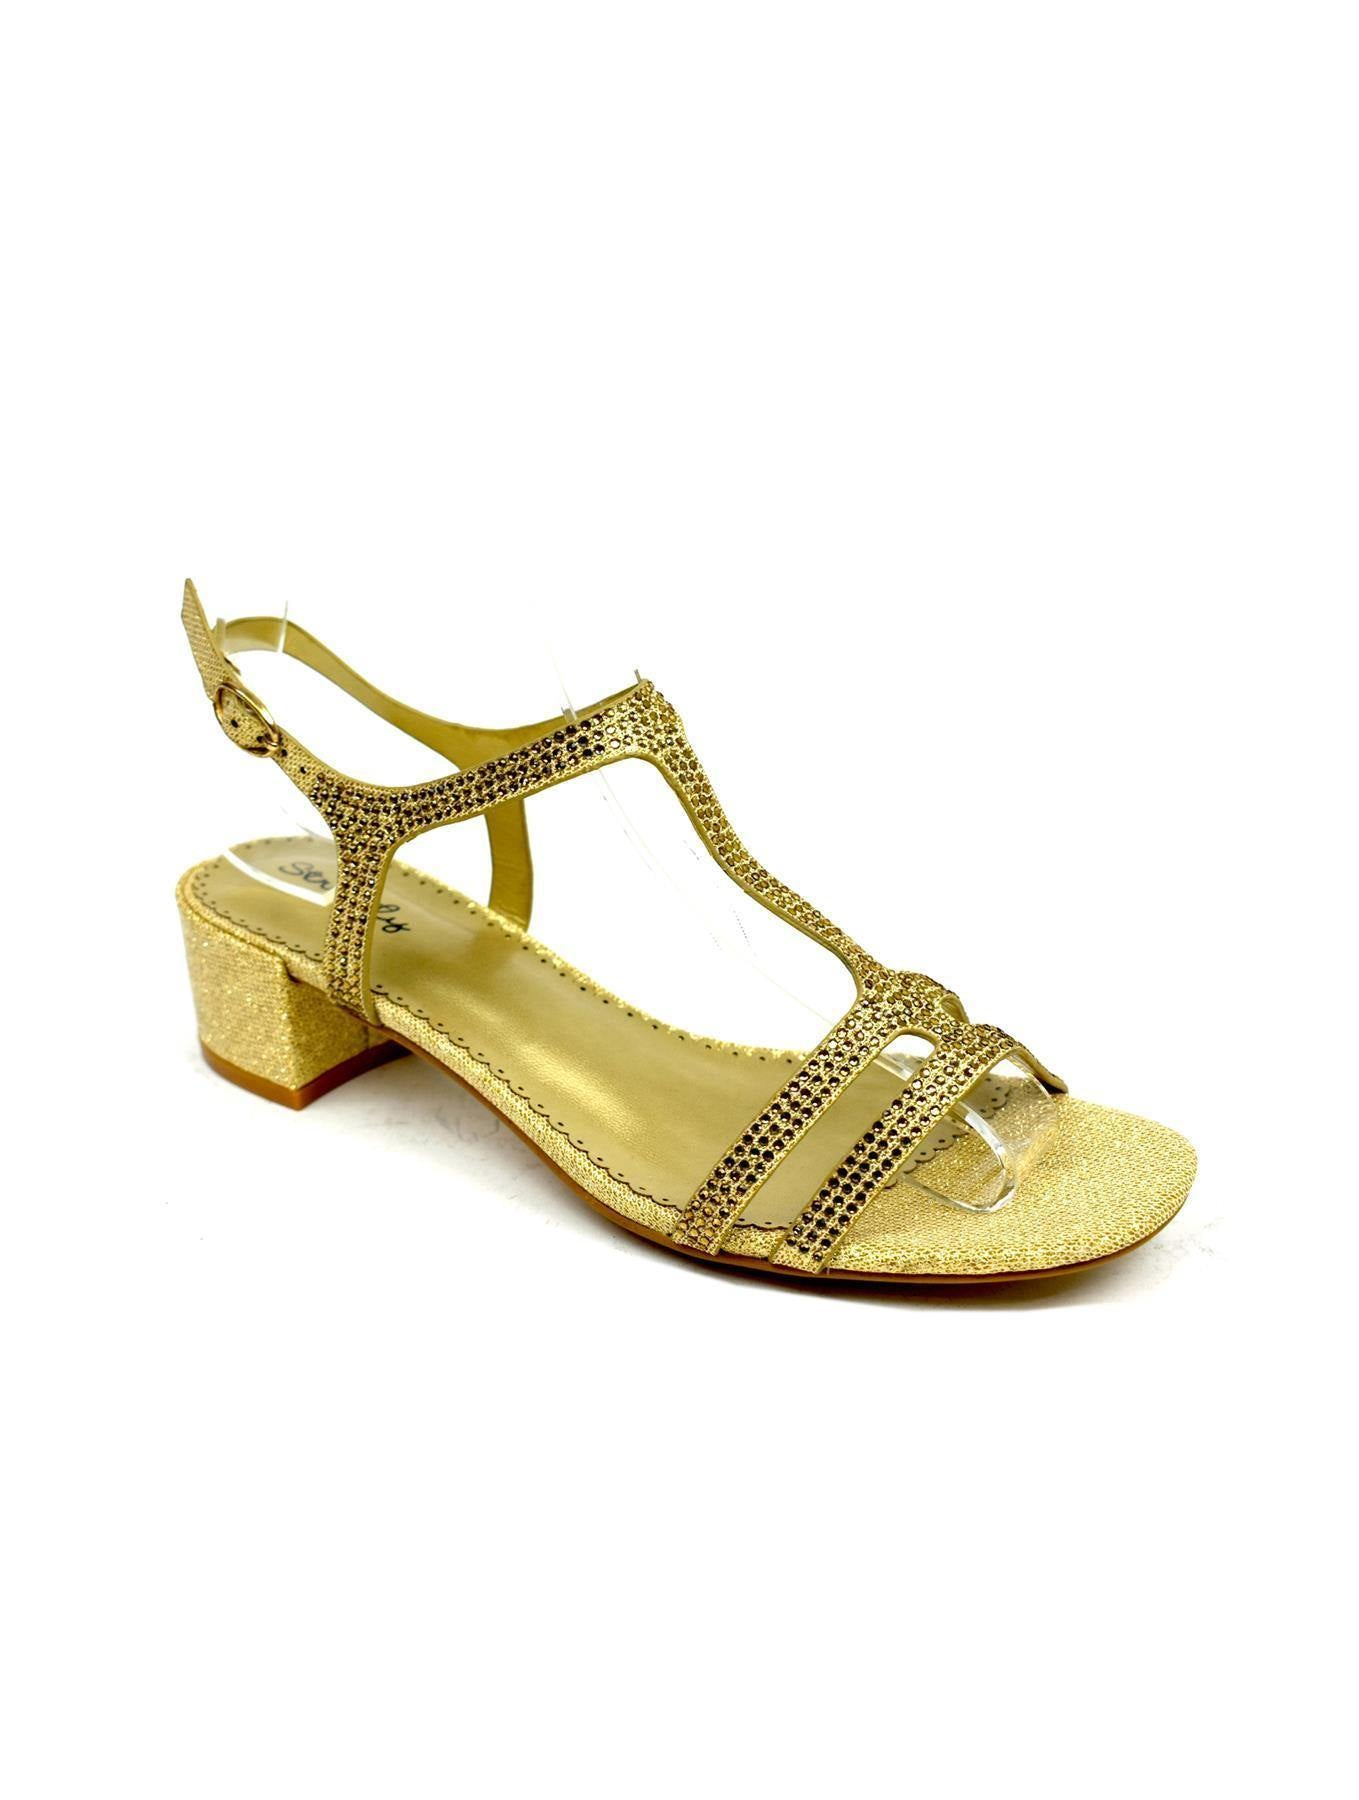 T-Bar Open Toe Evening Sandal Gold - DadiTude